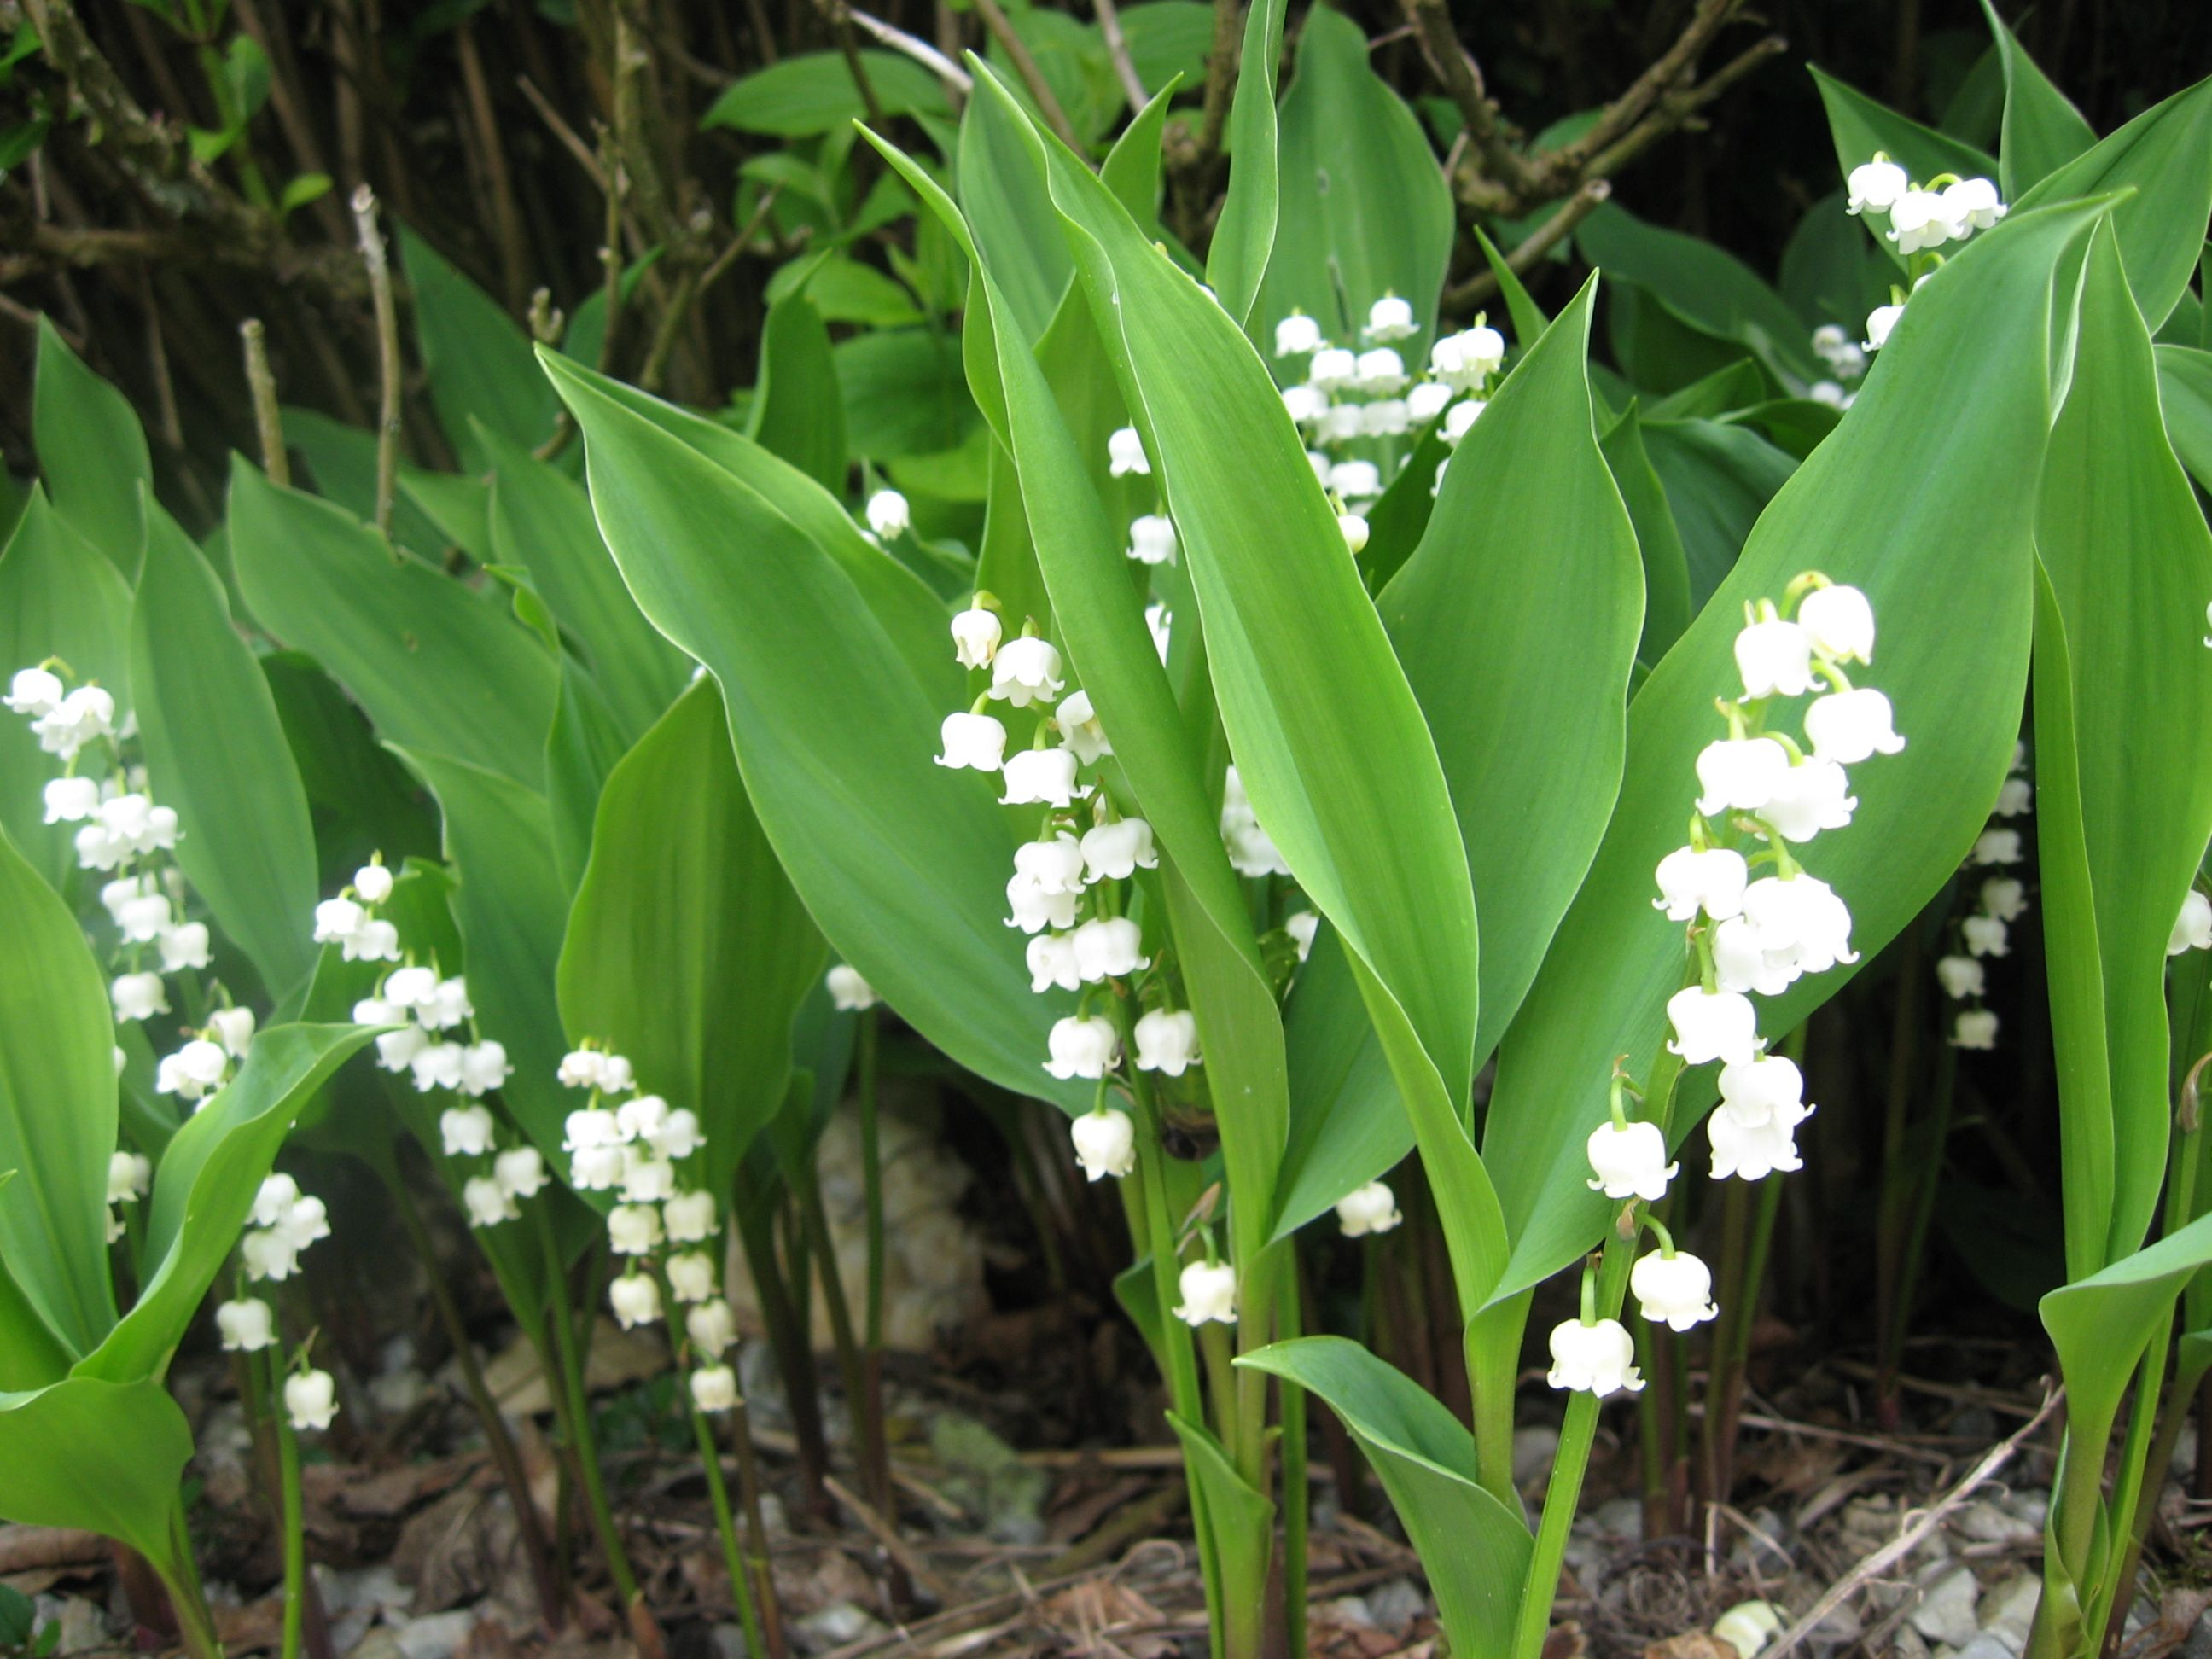 Lily of the valley may day in france gardens flowers and plants lily of the valley may day in france izmirmasajfo Images